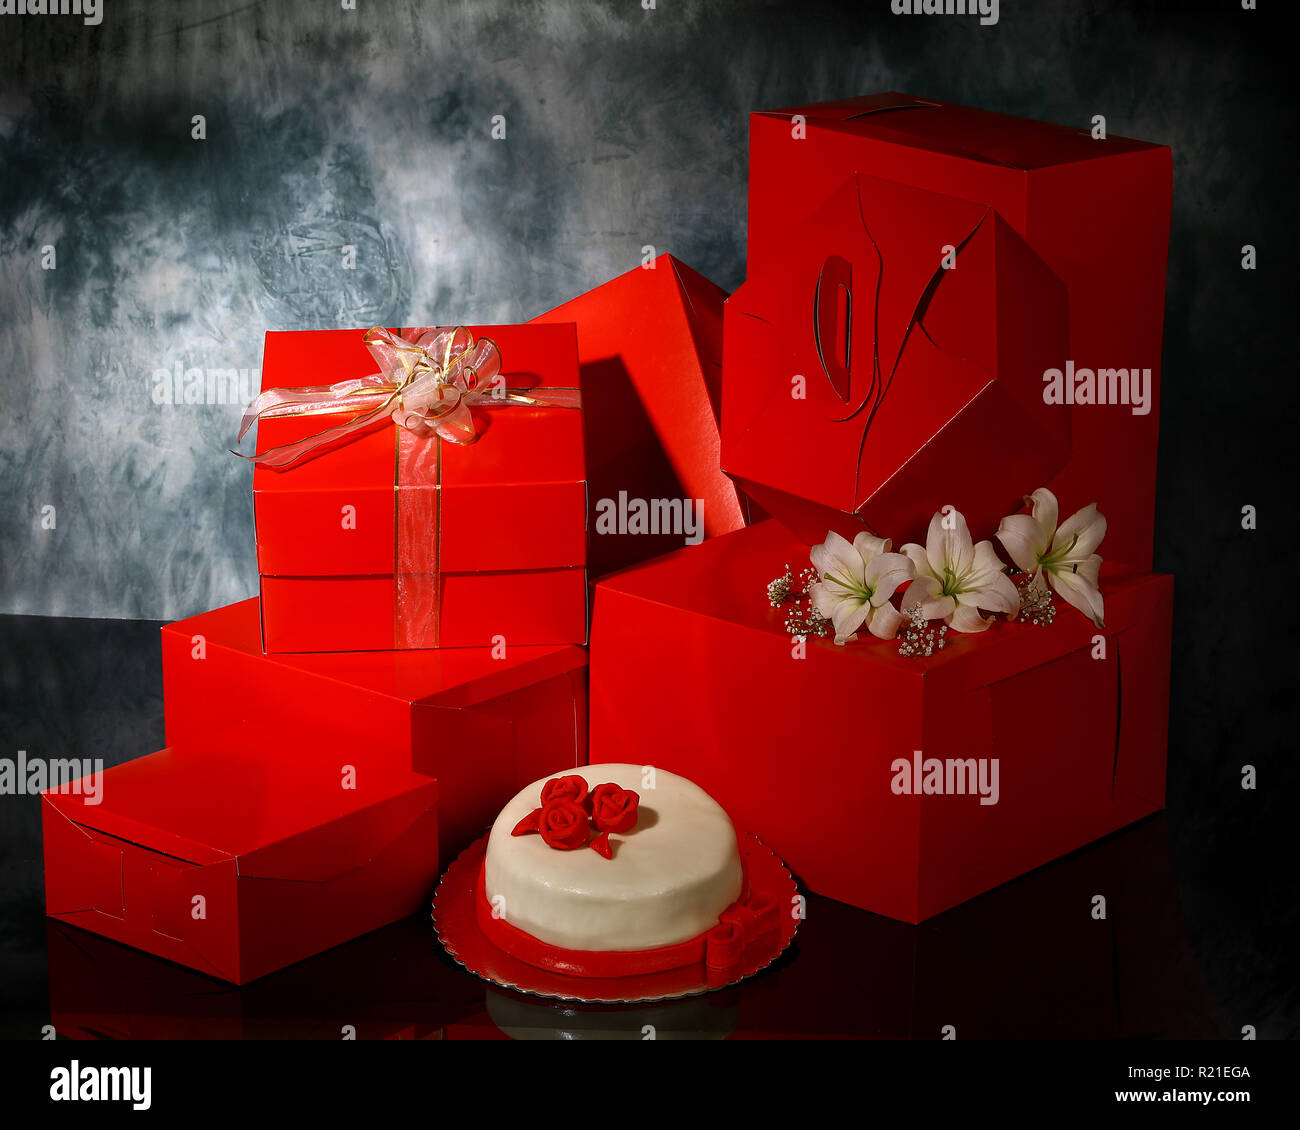 A shot of different types of red packaging - Stock Image